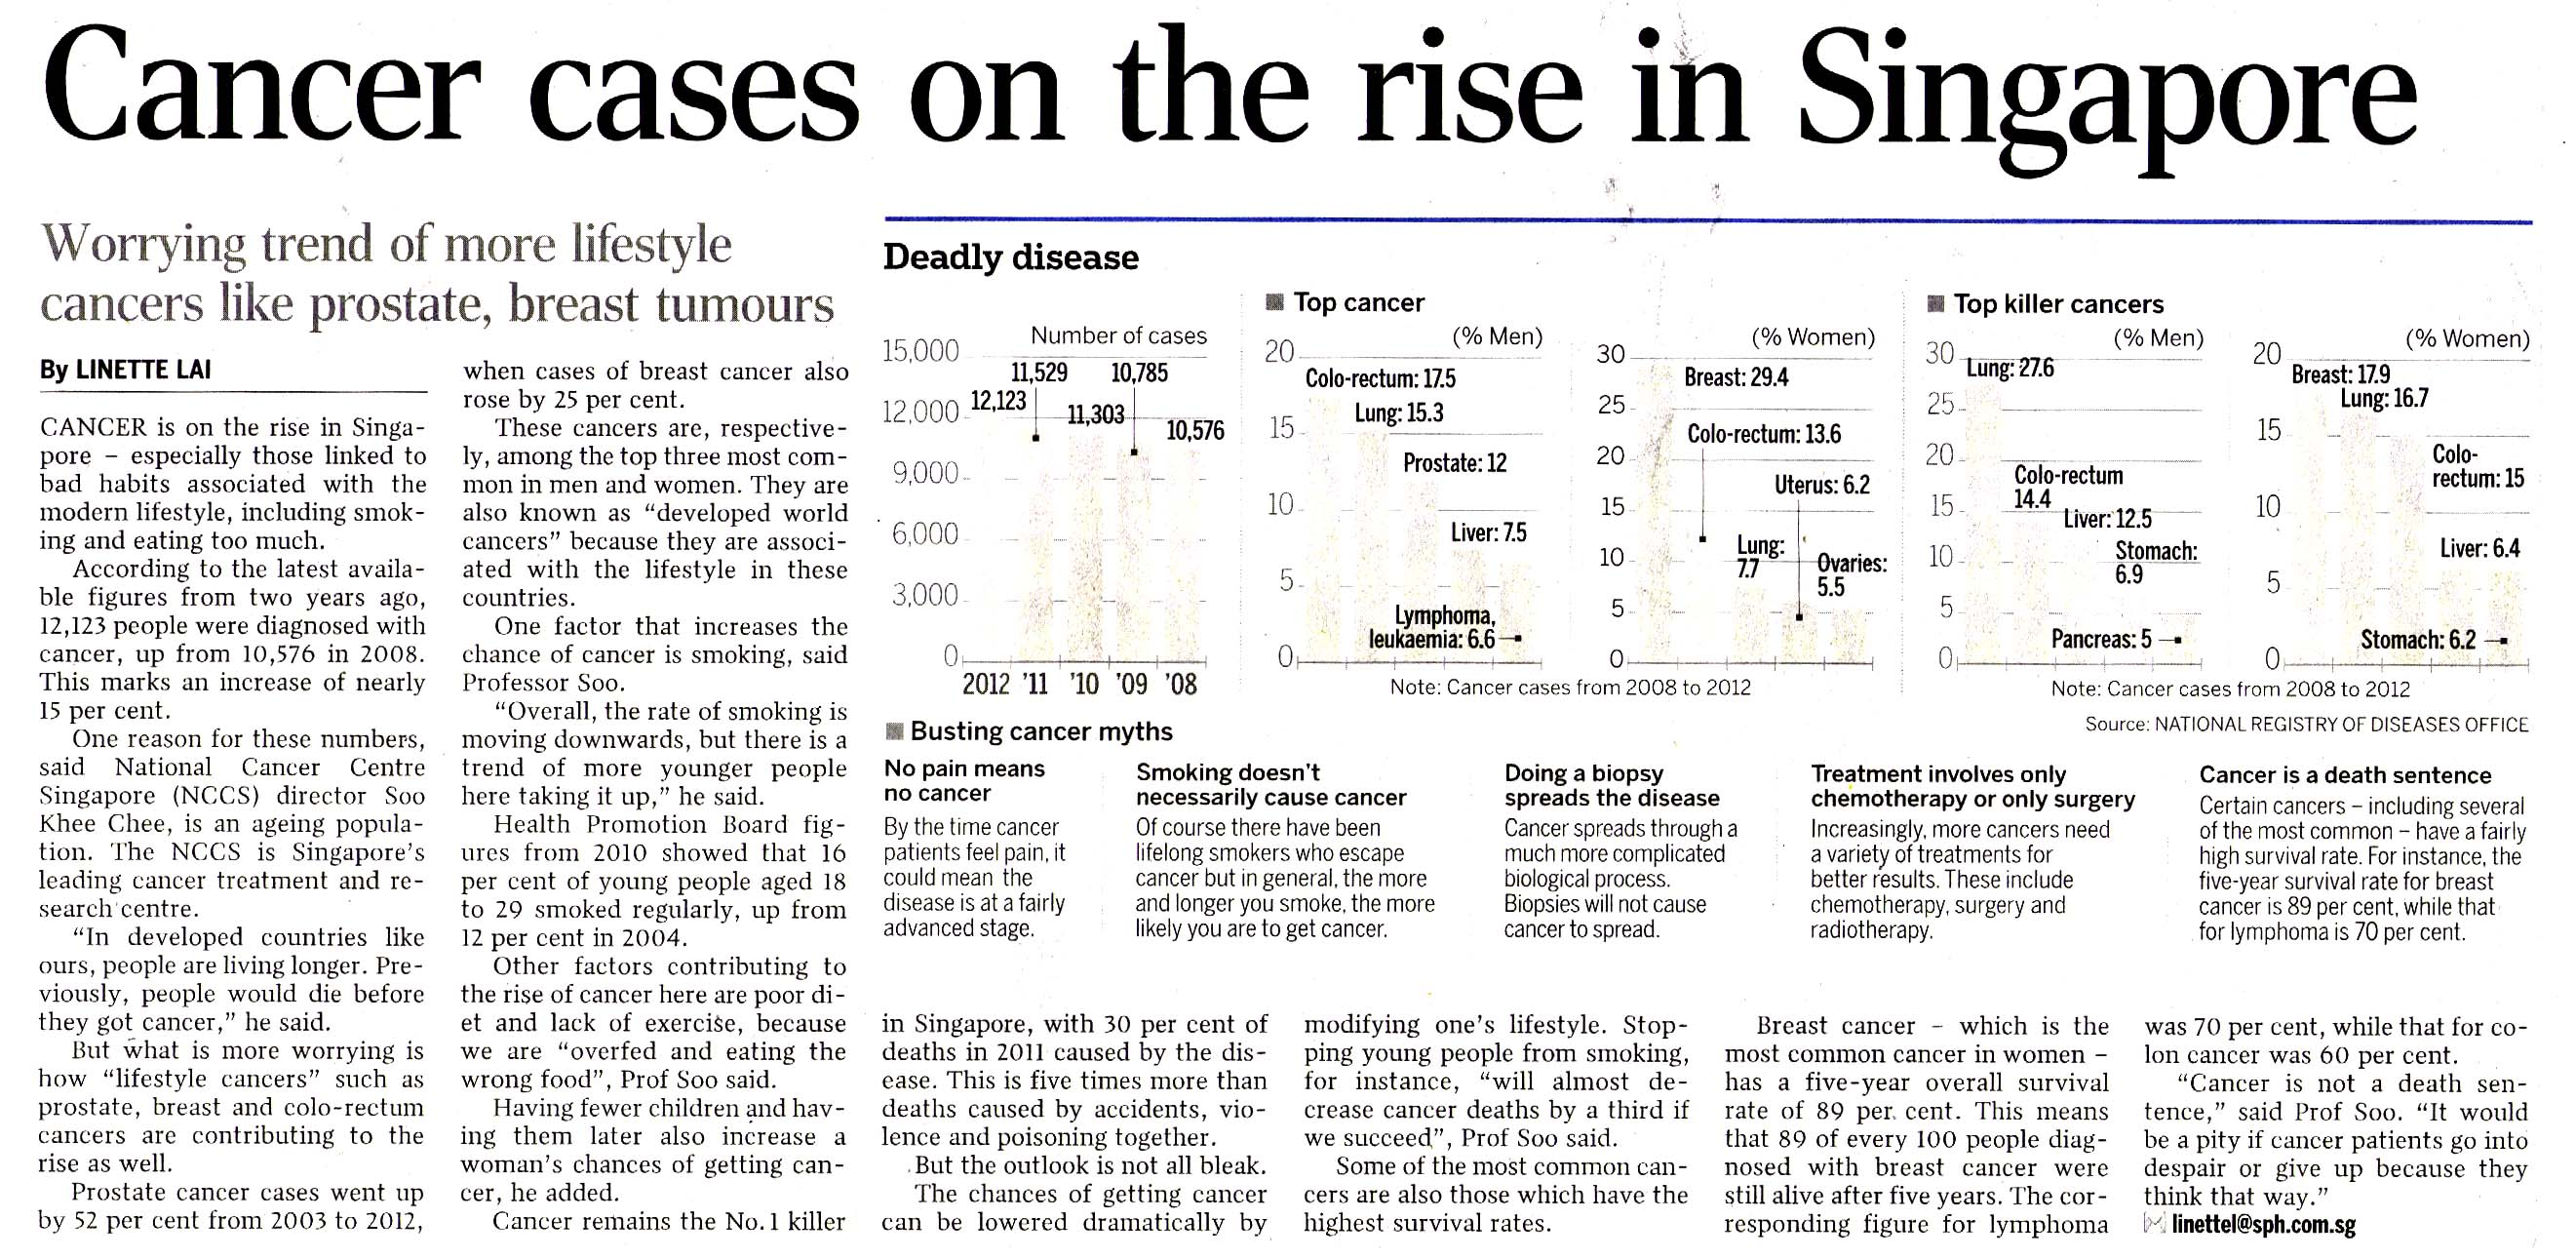 Singapore Cancer Cases on the Rise